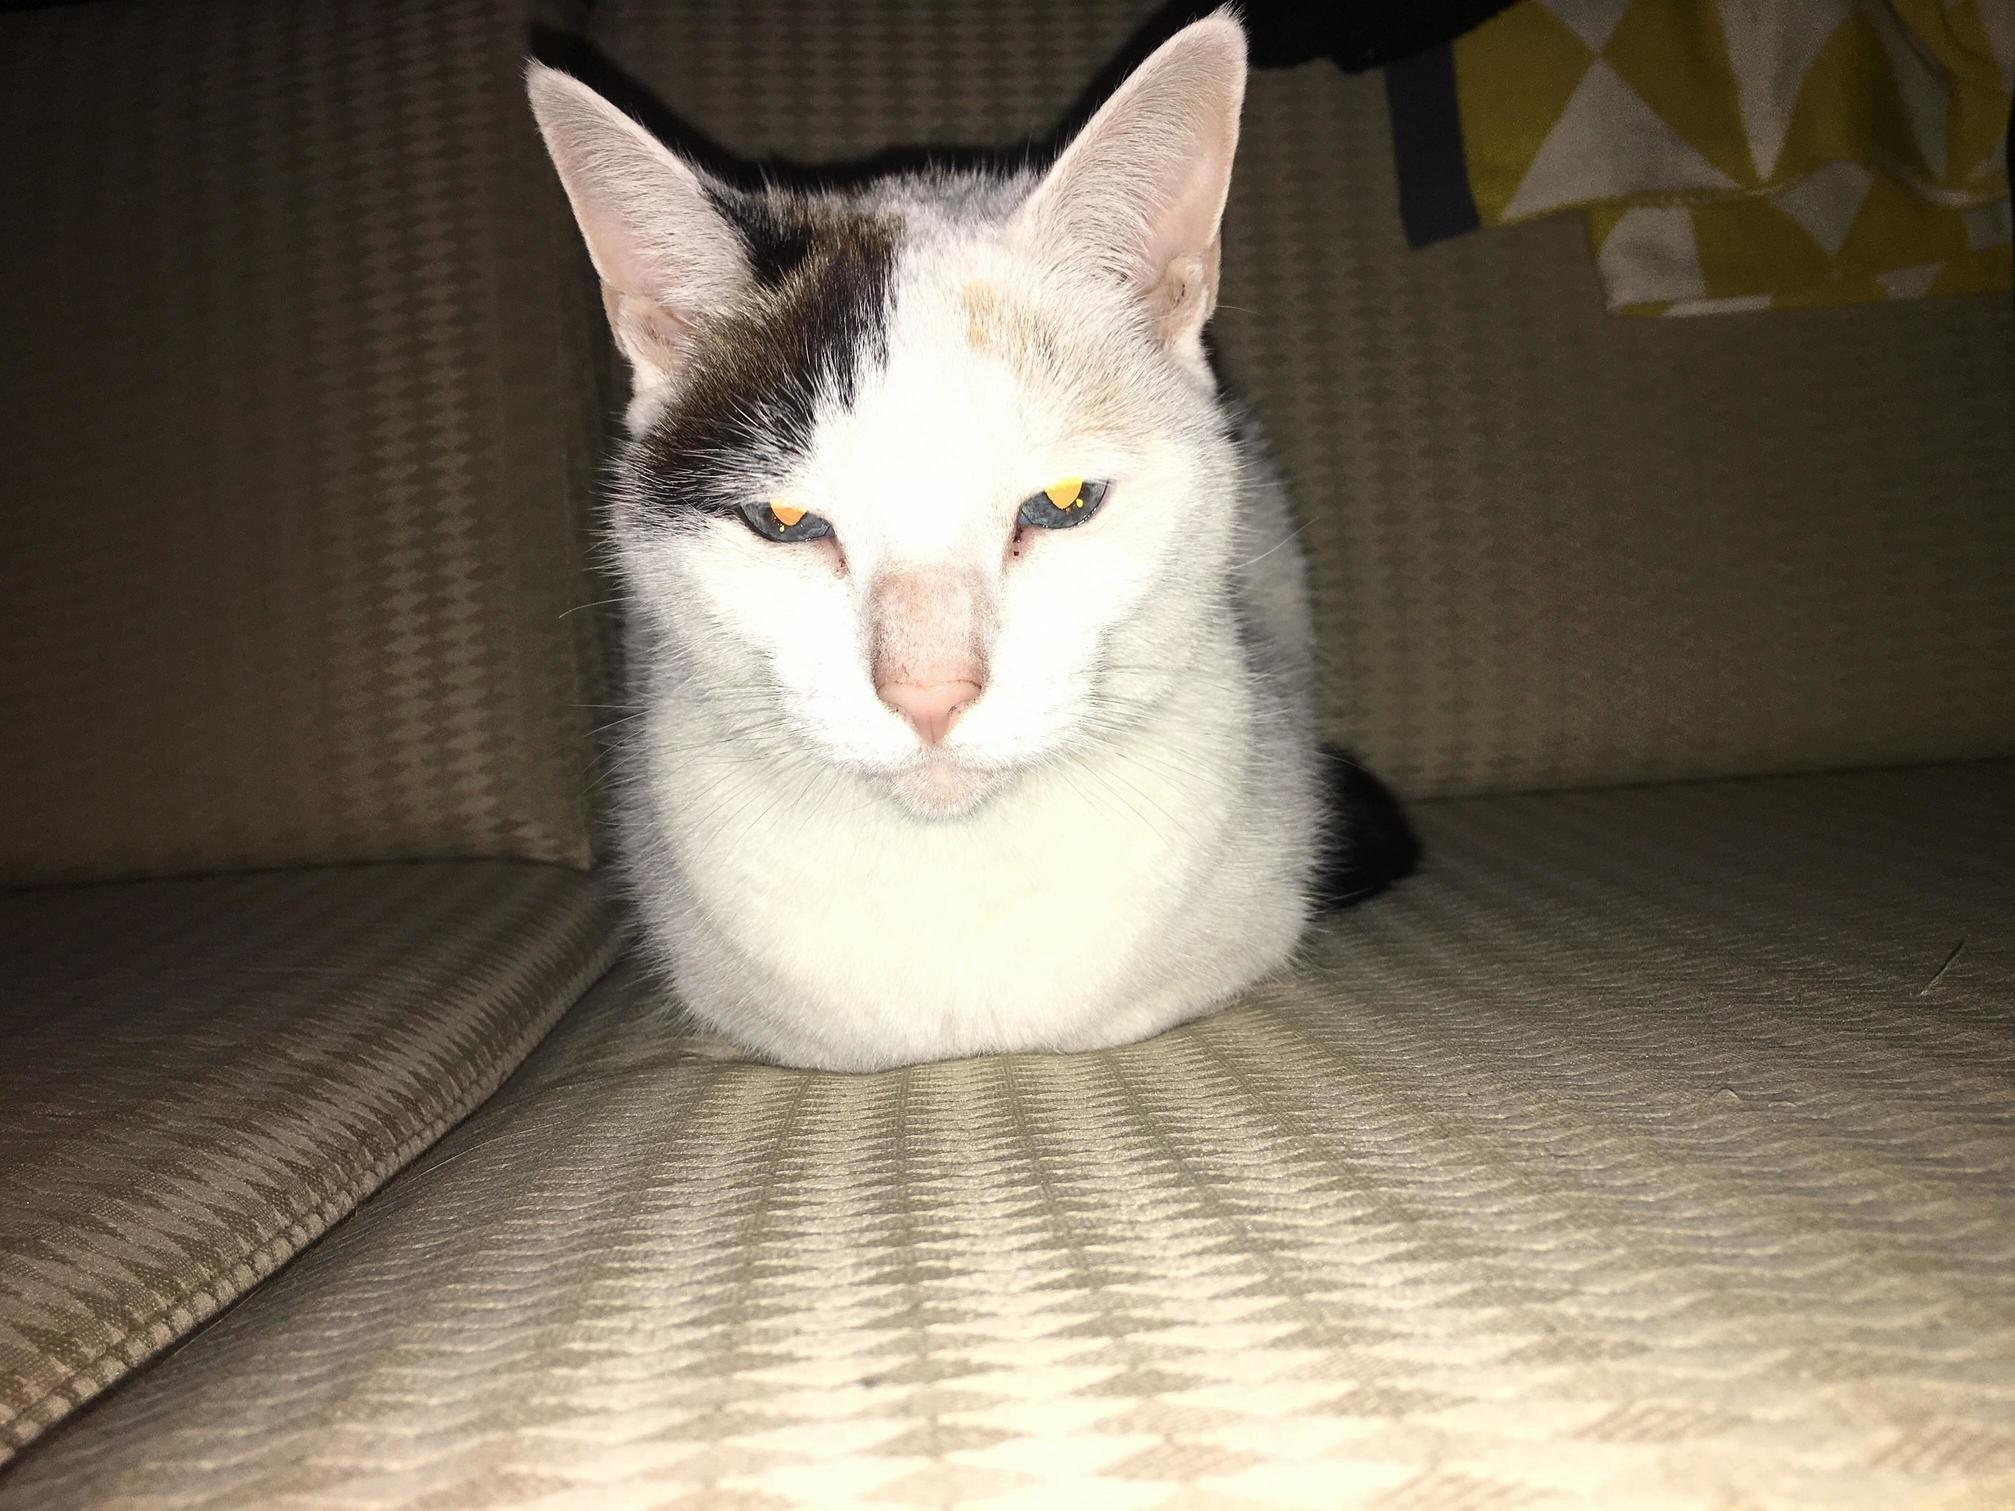 Mayhem is 8 years old with blue eyes and does a good loaf.